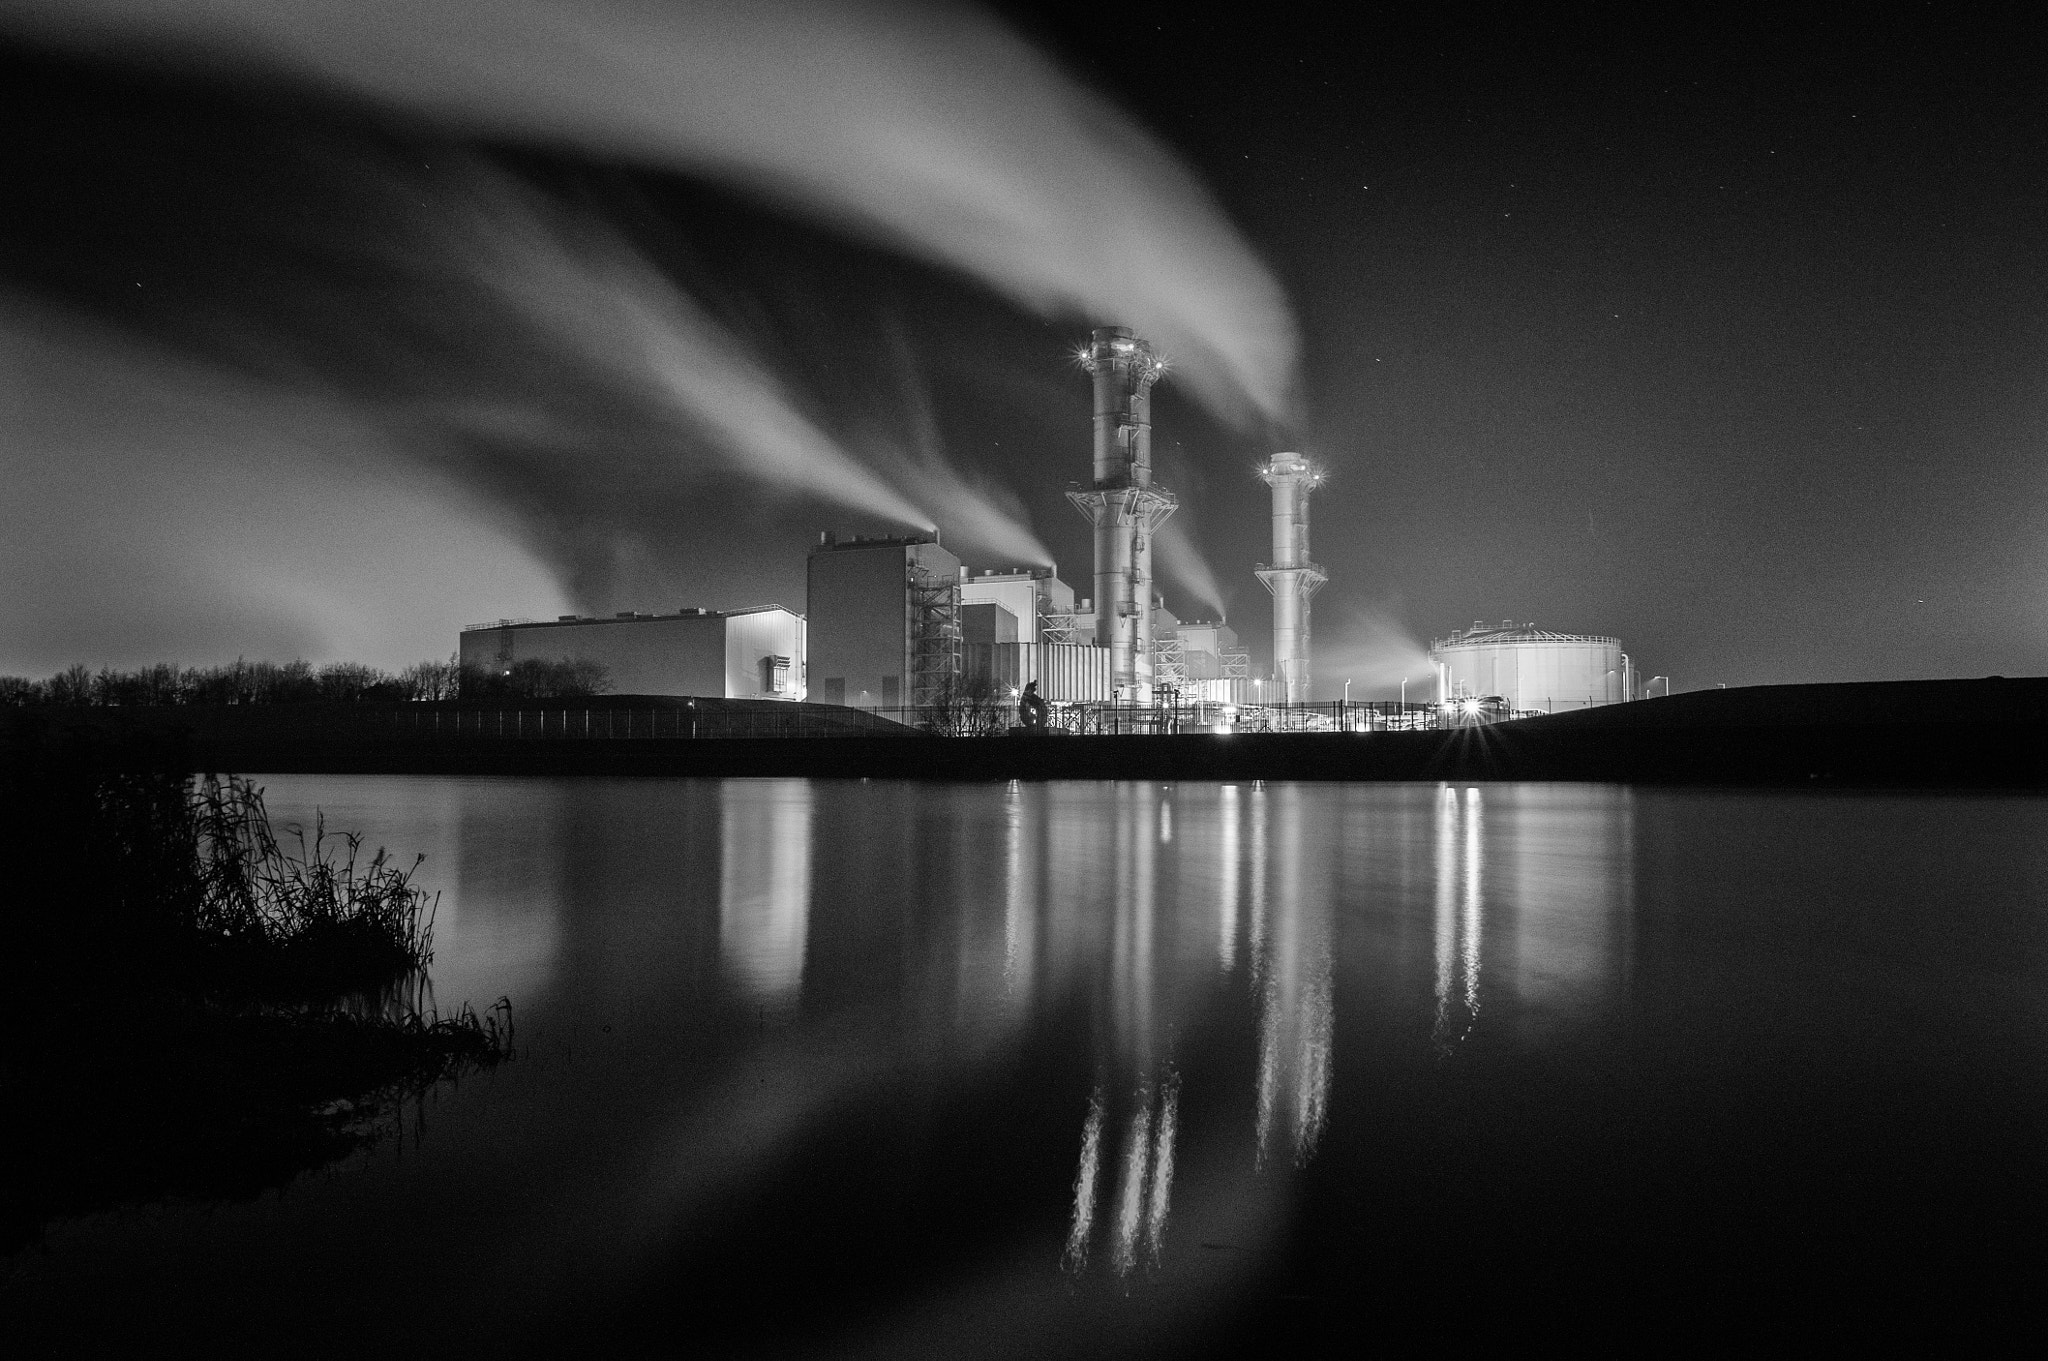 Photograph Staythorpe Power Station by Alex Clark on 500px